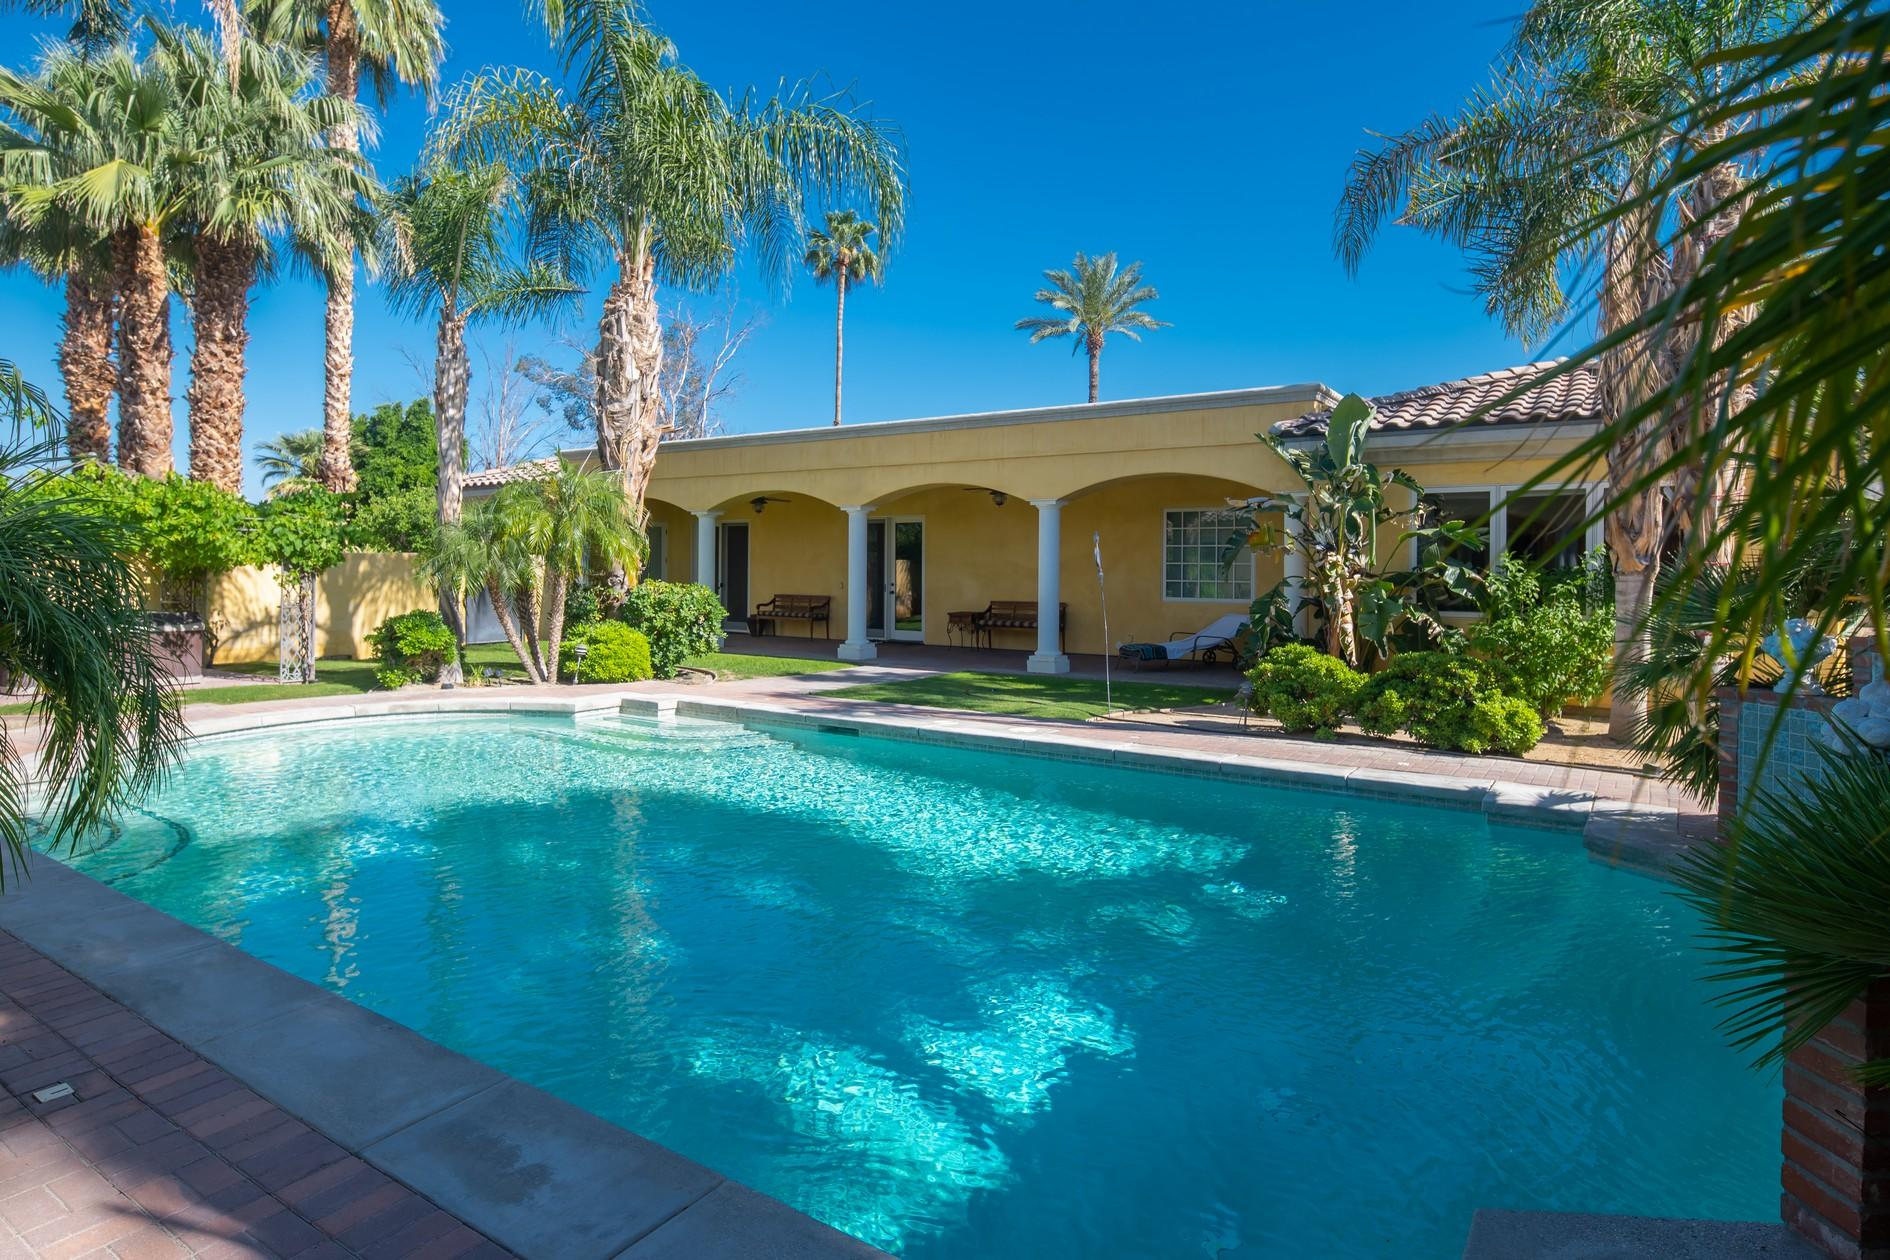 38785 Peterson Road, Rancho Mirage, California 92270, 5 Bedrooms Bedrooms, ,6 BathroomsBathrooms,Residential,For Sale,38785 Peterson Road,219042664